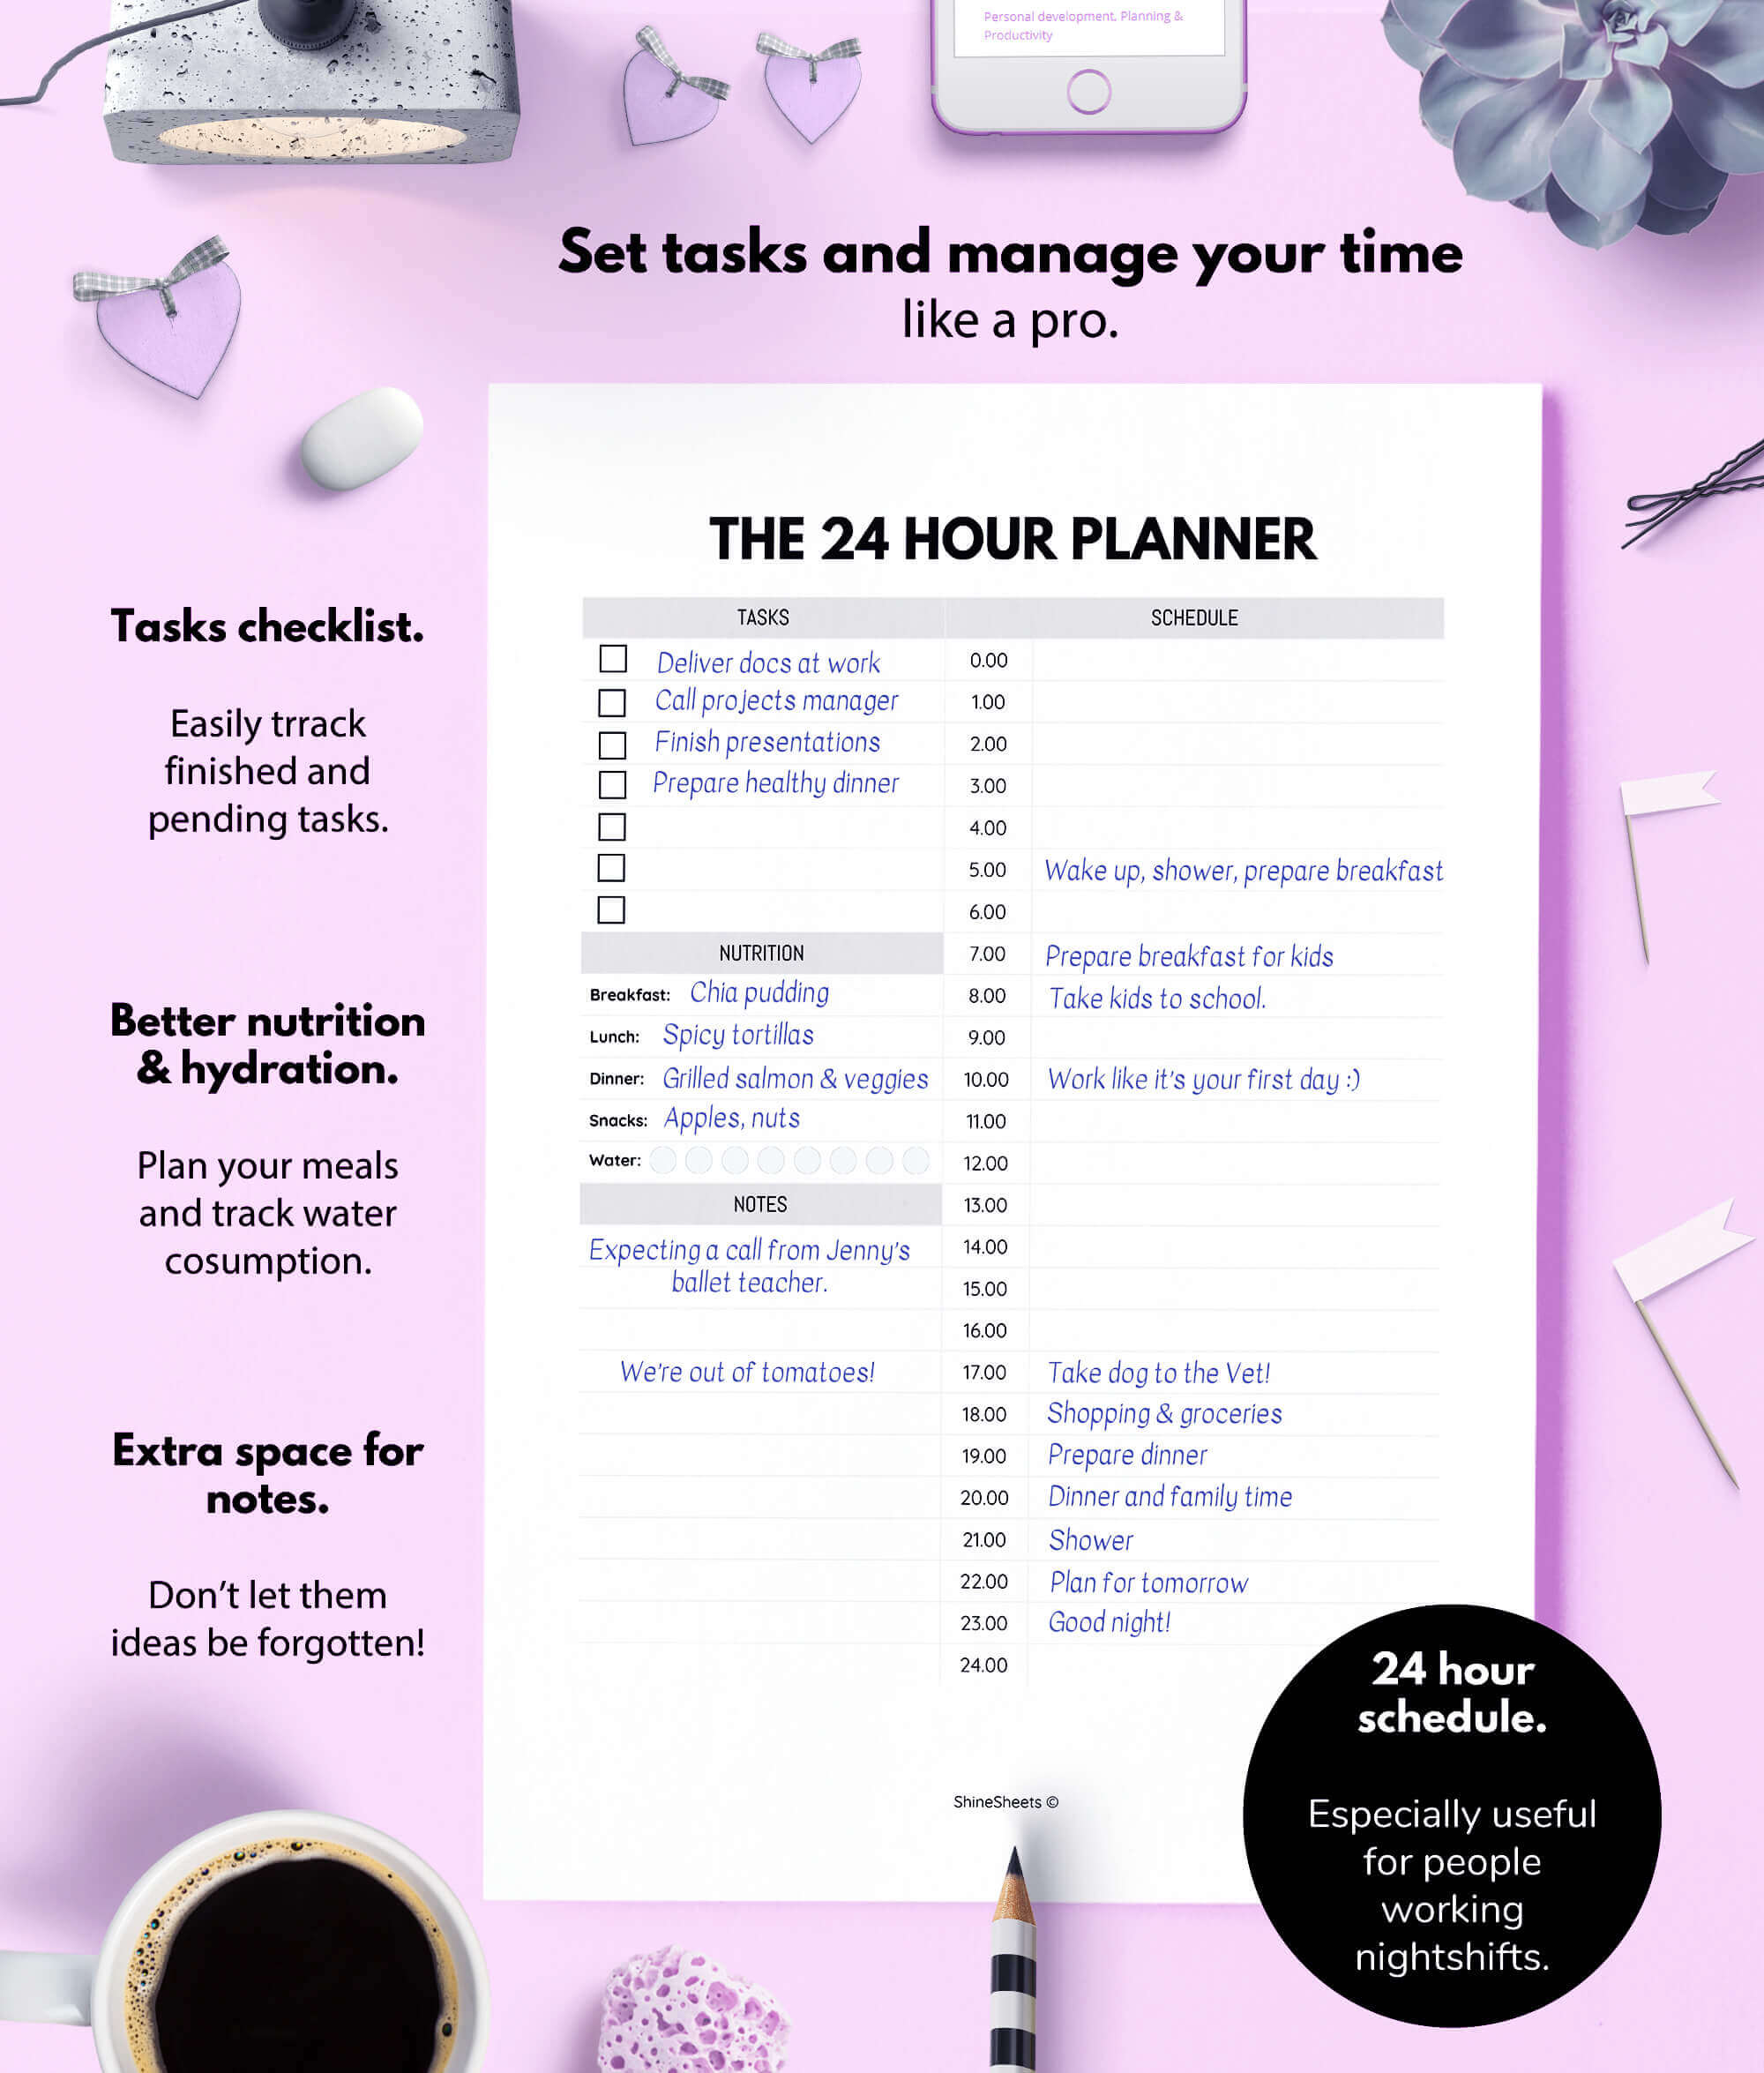 image relating to 24 Hour Daily Planner Printable named 24 Hour Each day Planner Printable